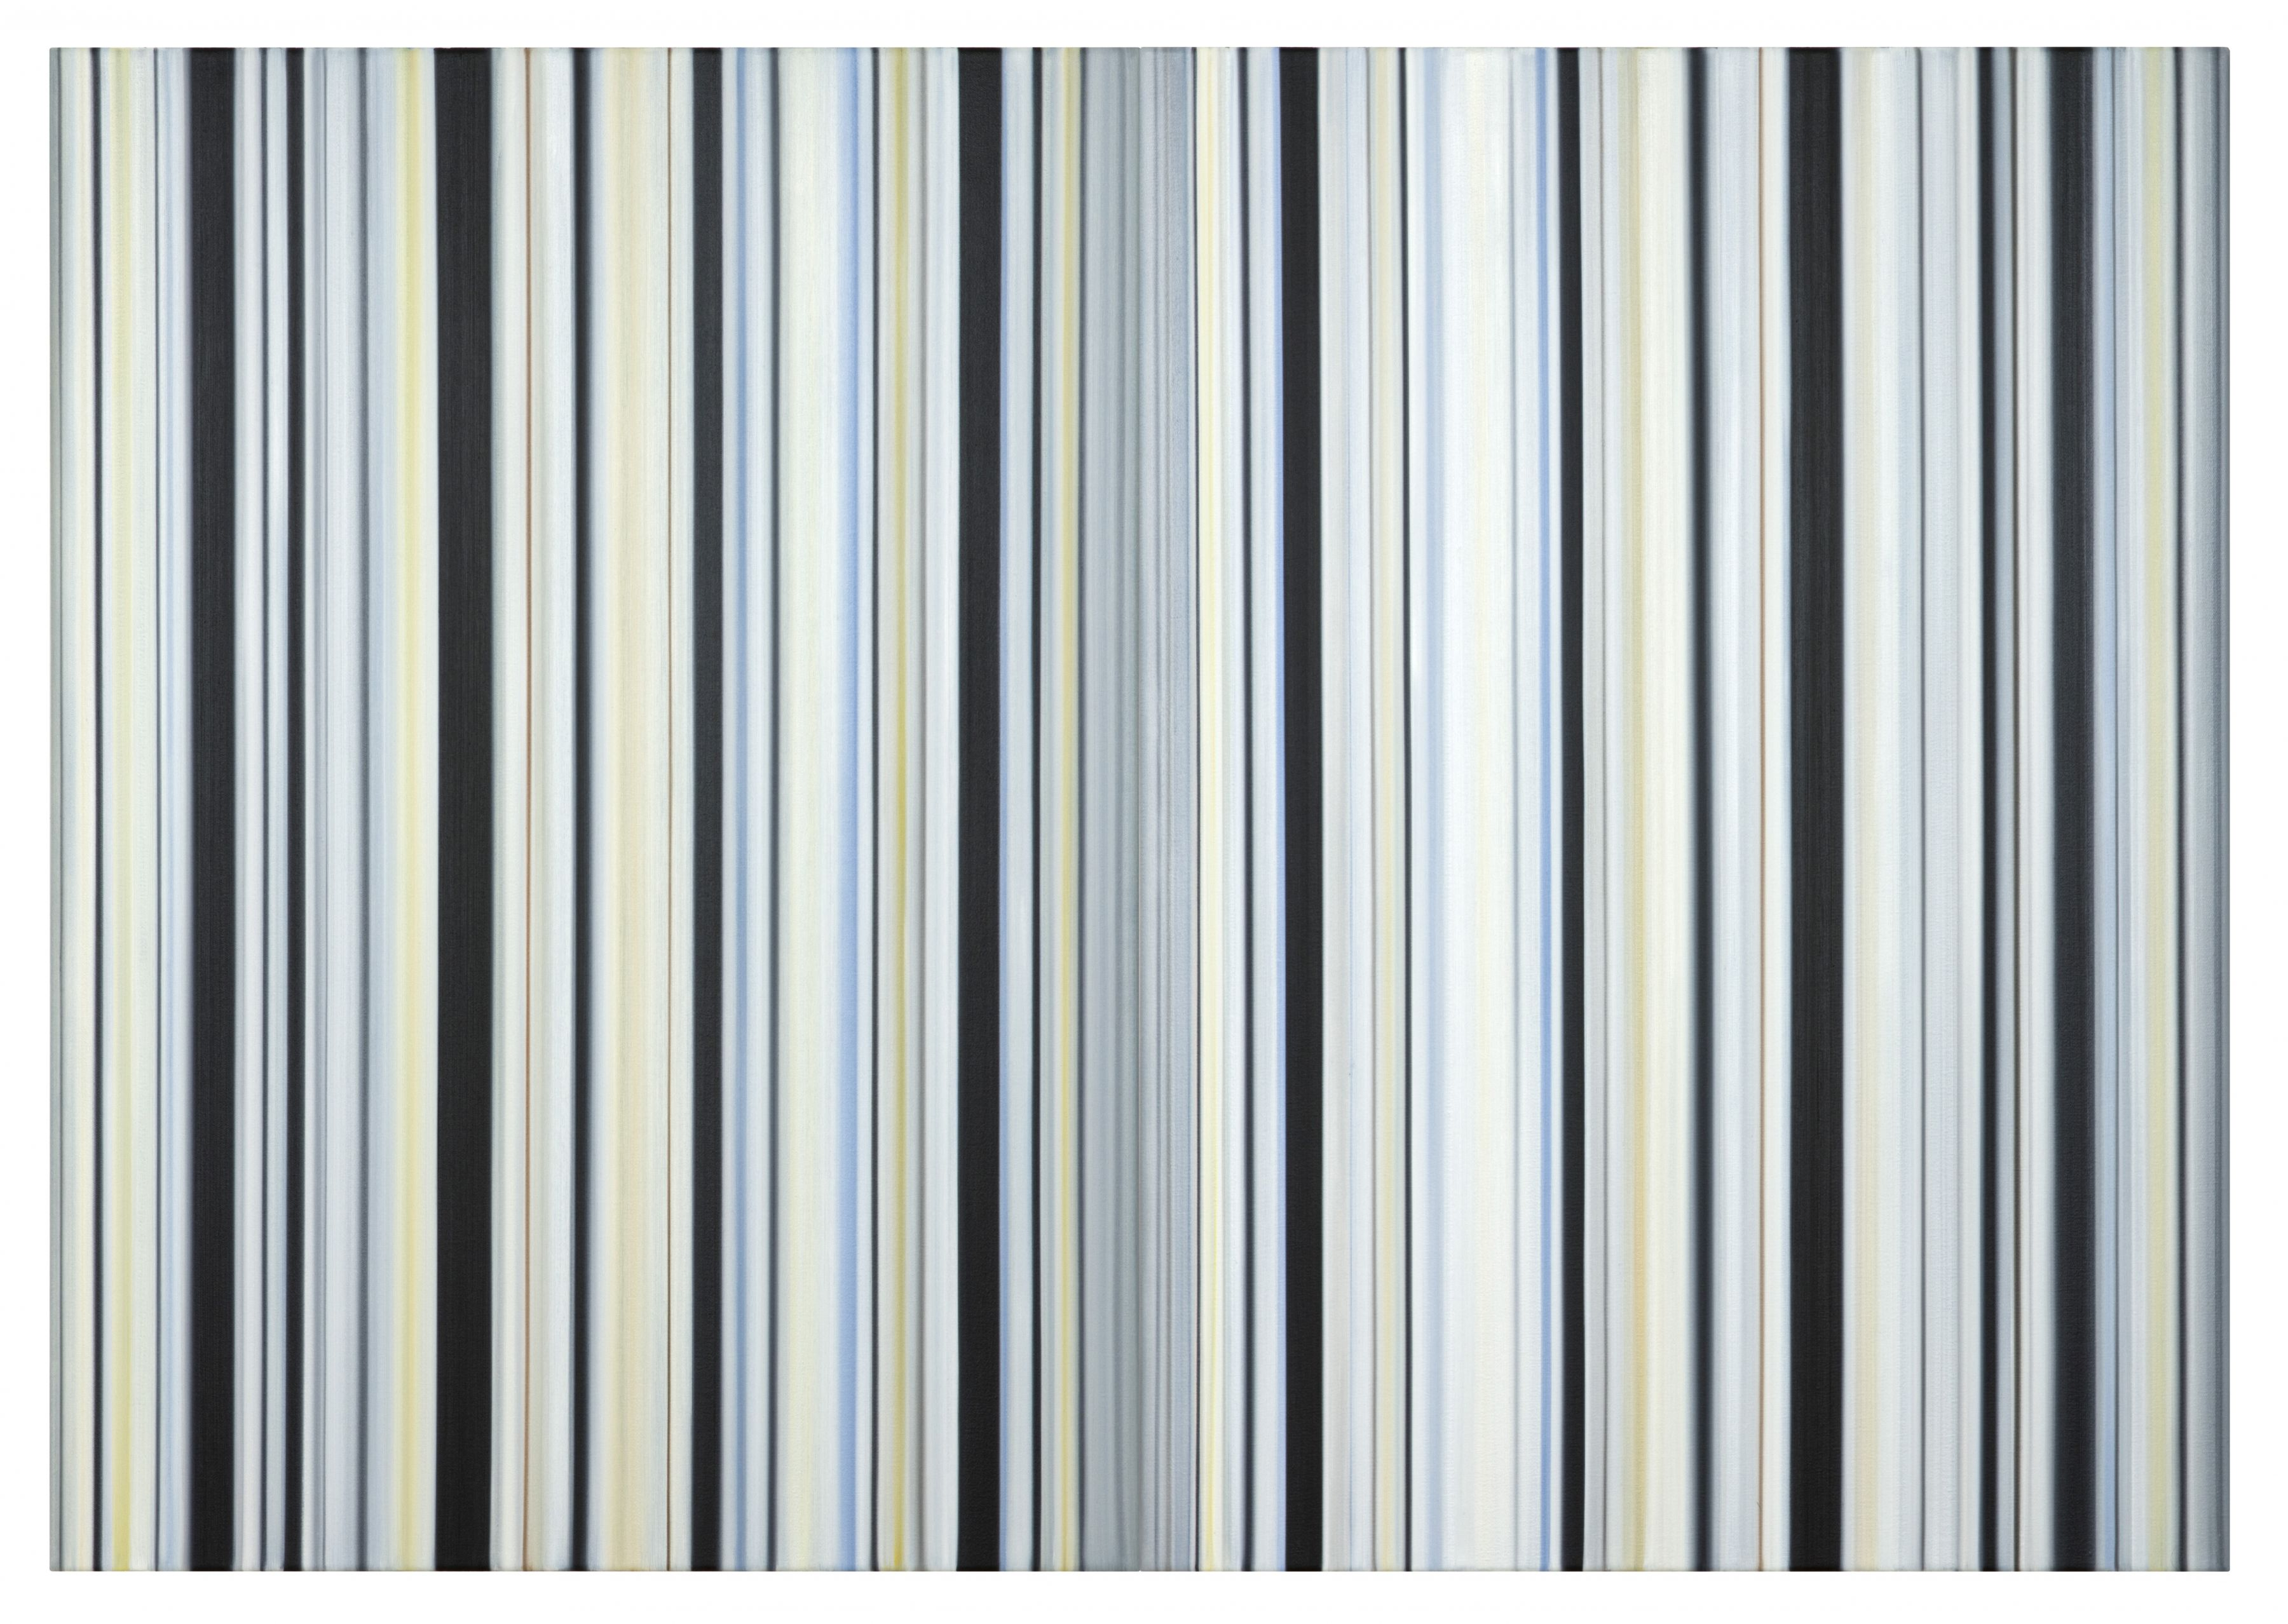 Stripes Nr. 108 + 109, 2016, Oil on Canvas